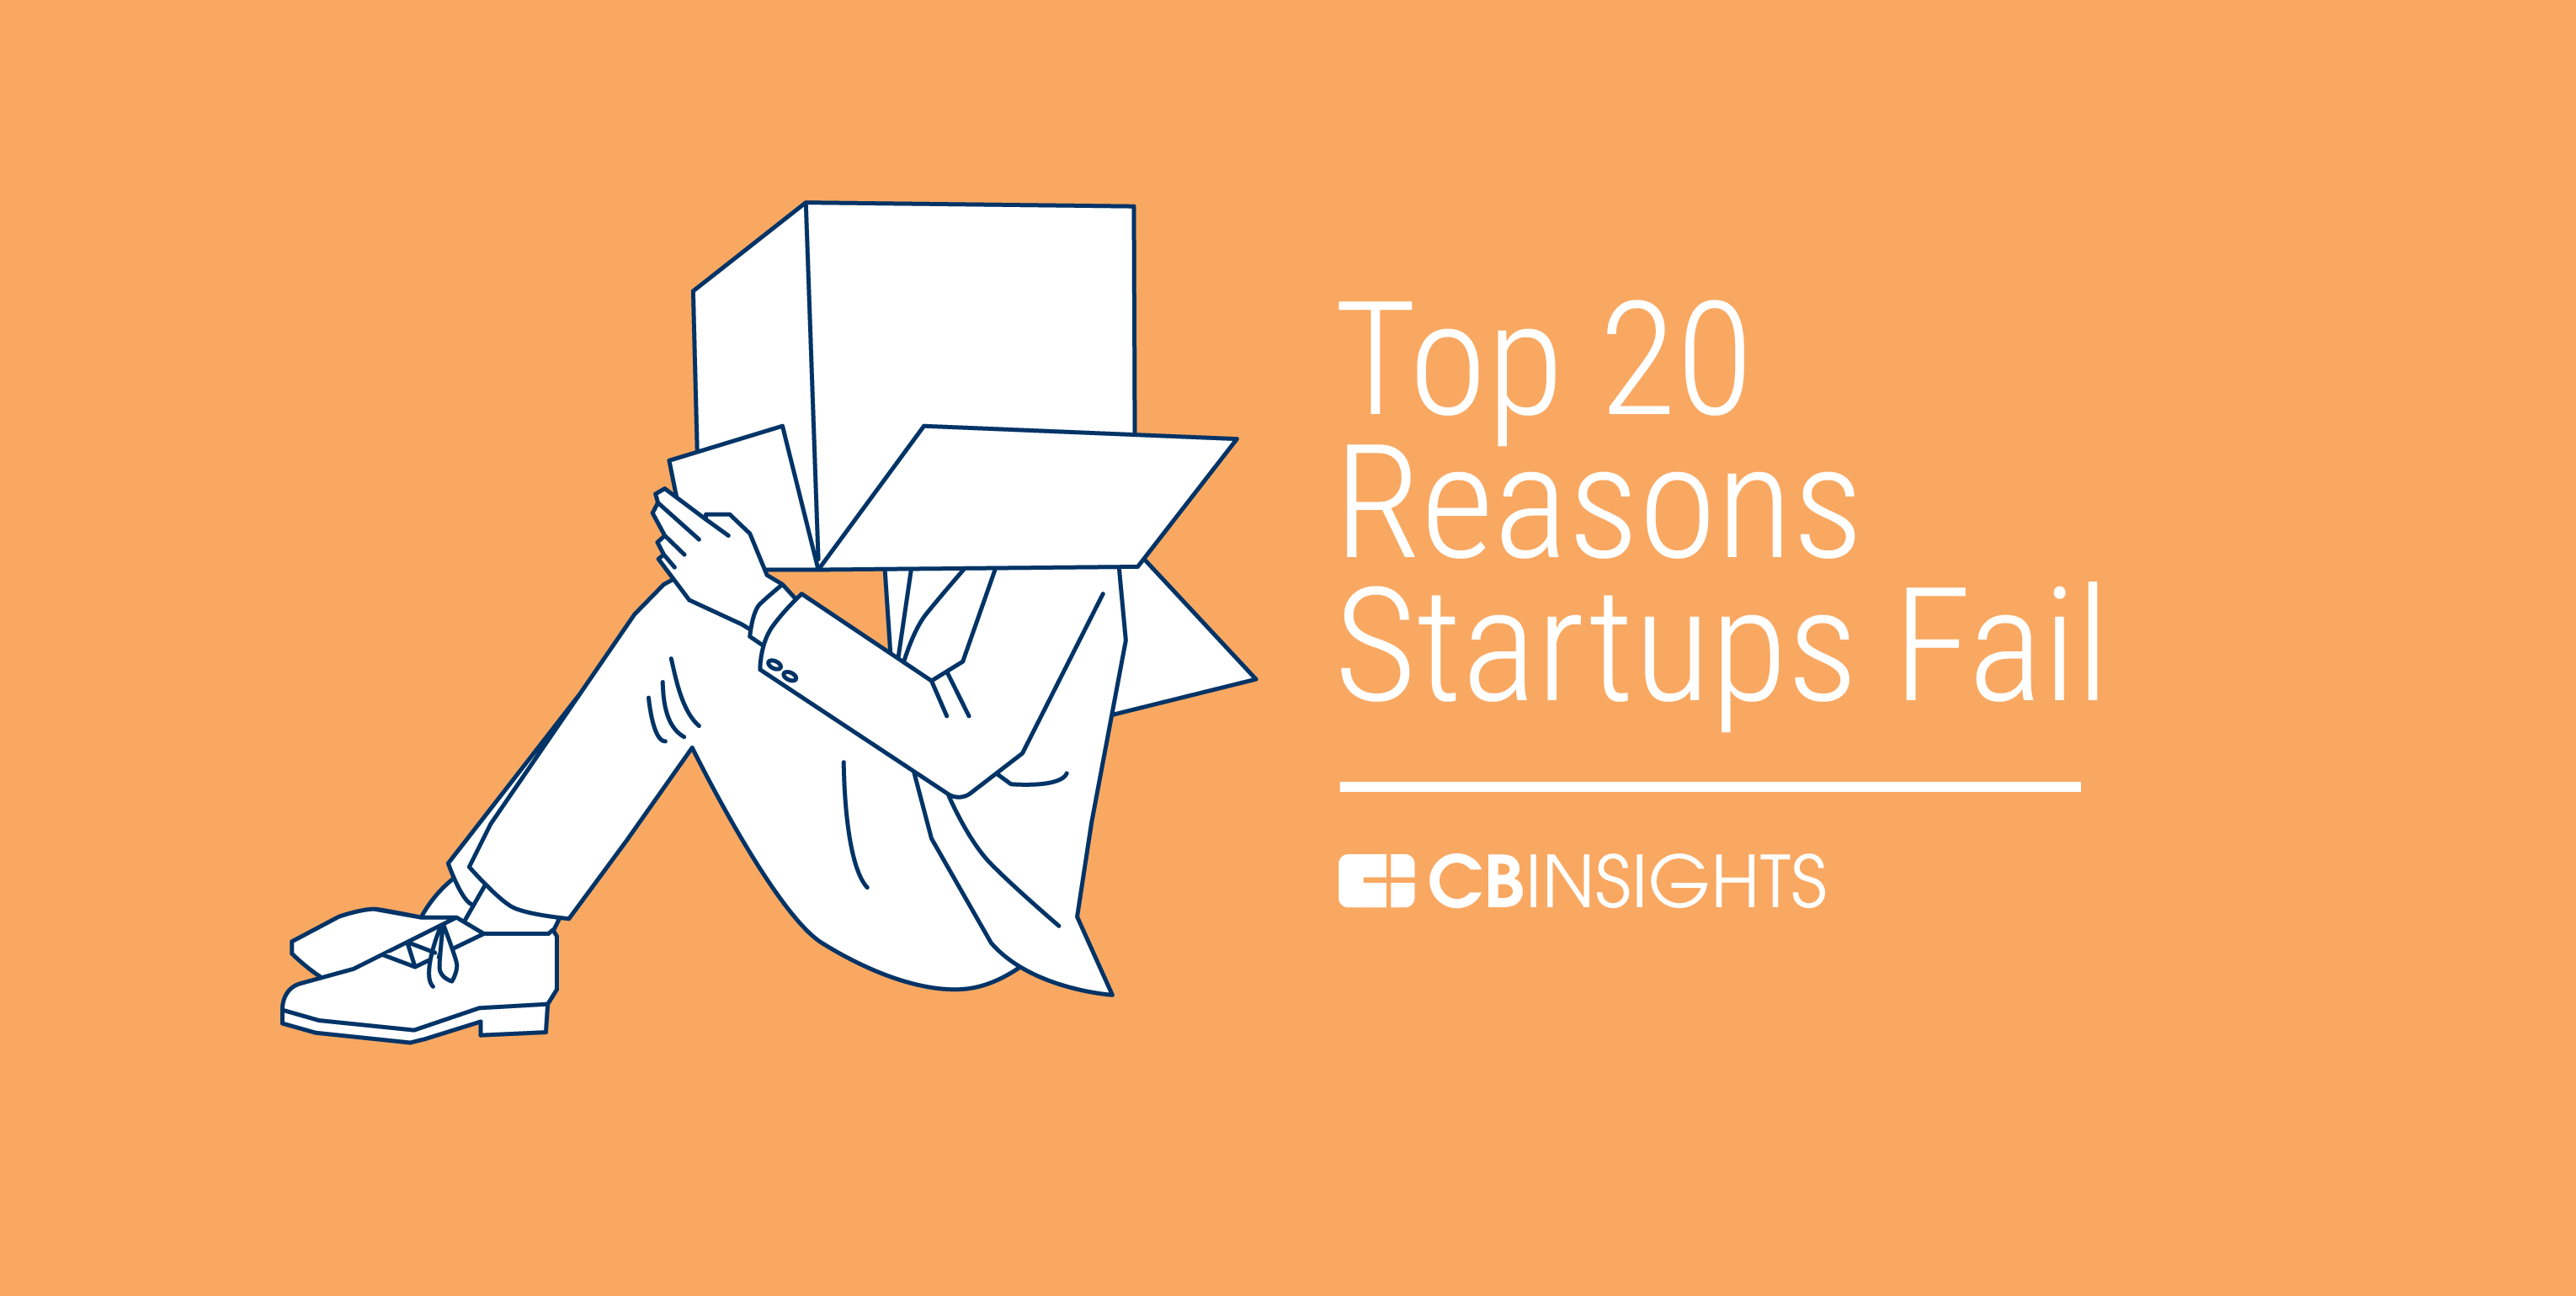 Why Startups Fail: Top 20 Reasons l CB Insights